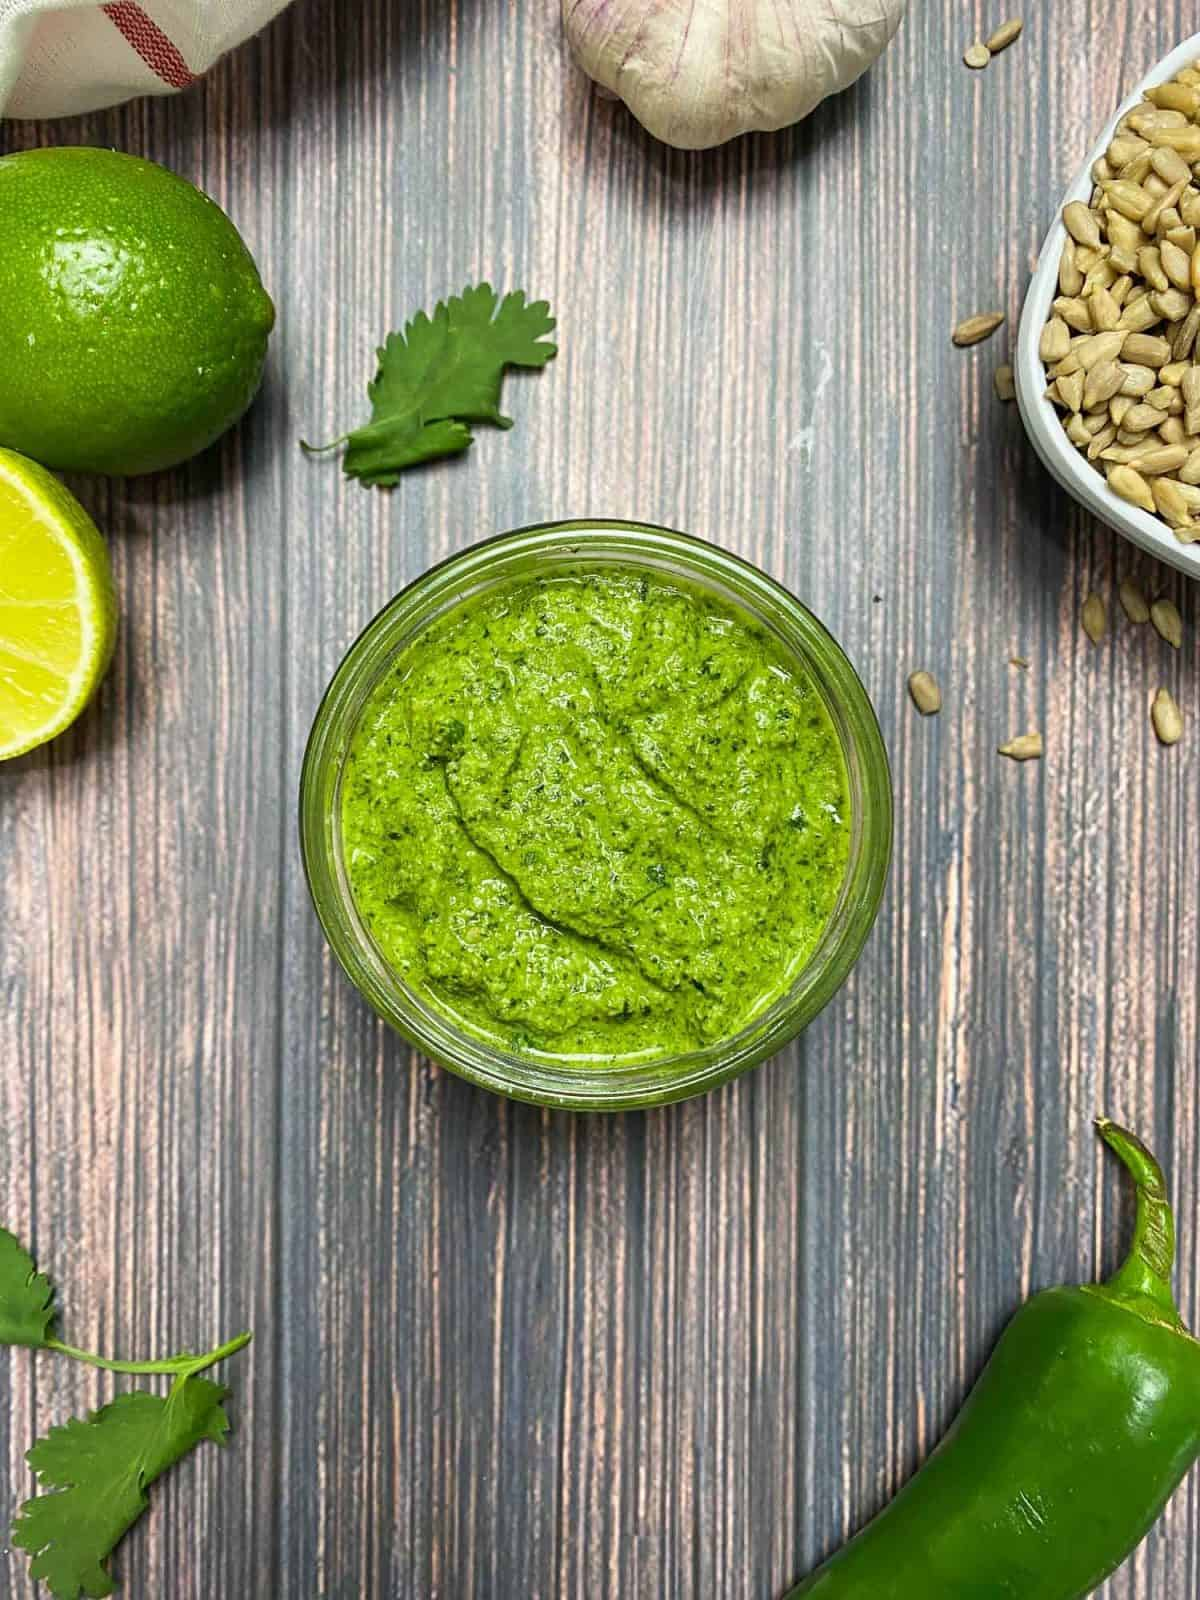 open jar of pesto sauce with lime and cilantro in background